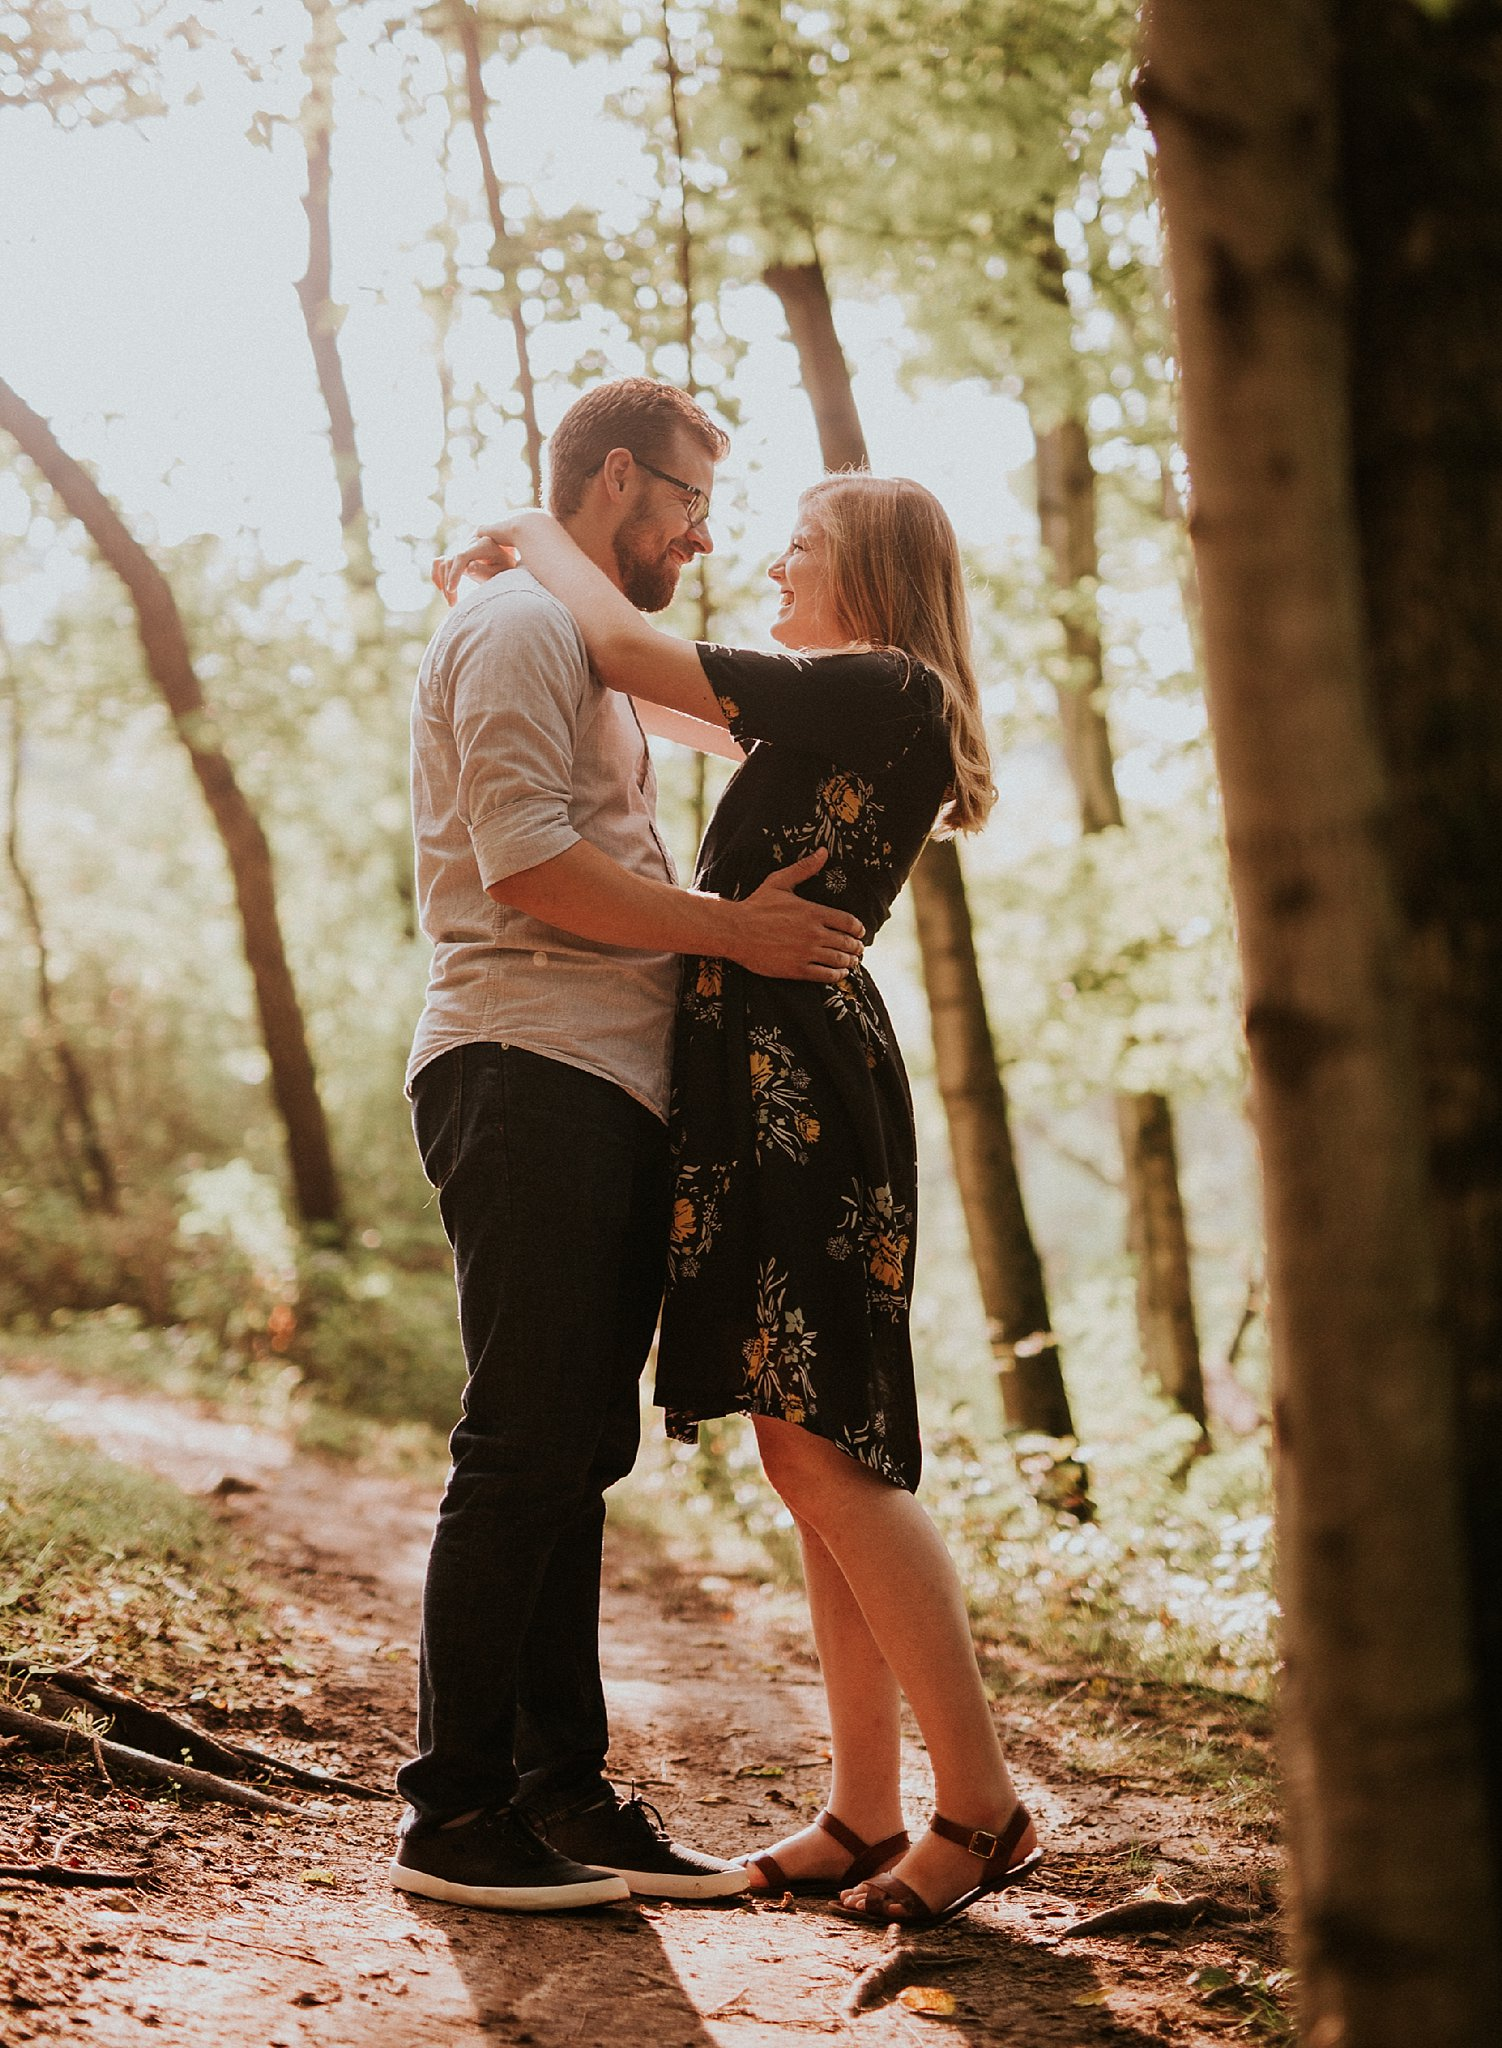 peter-katelyn_chicago-engagement-session_west-dundee-raceway-woods_0005.jpg